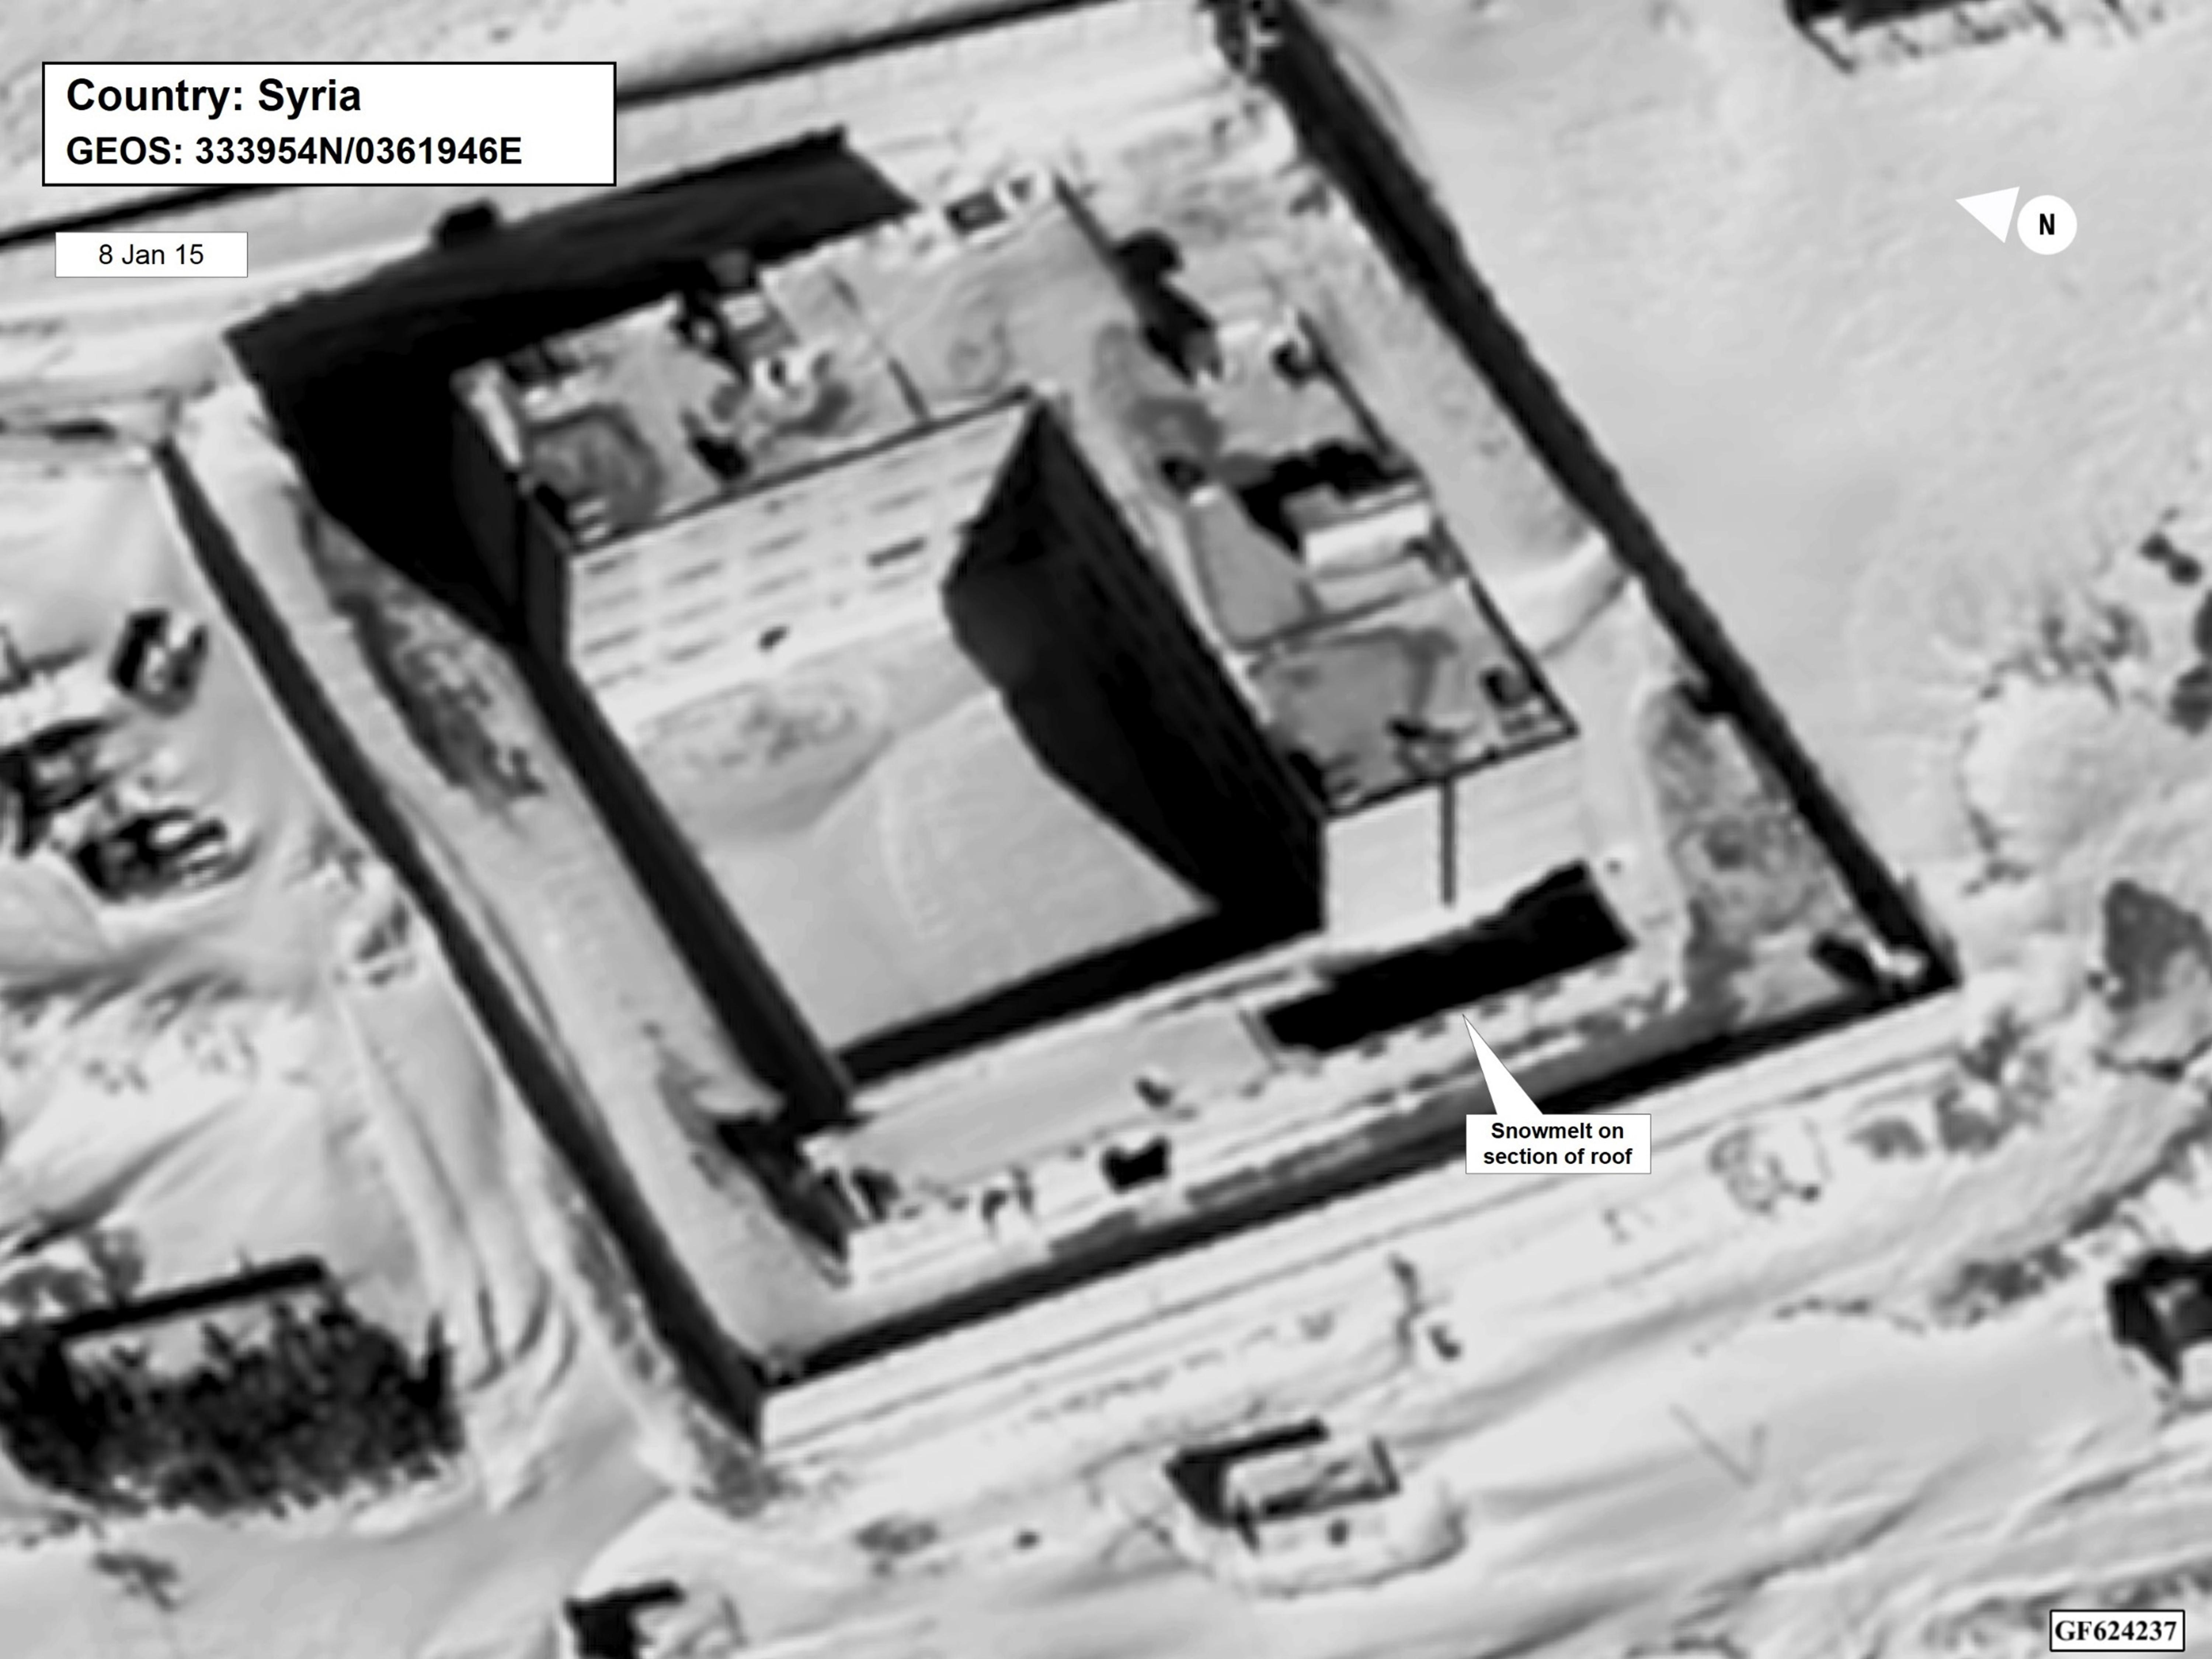 This image provided by the State Department and DigitalGlobe, taken Jan. 15, 2015, a satellite image of what the State Department described as a building in a prison complex in Syria that was modified to support a crematorium. The Trump administration accused the Syrian government of carrying out mass killings of thousands of prisoners and burning the dead bodies in a large crematorium outside the capital. It also stepped up criticism of Iran and Russia for supporting the Syrian government. (State Department/DigitalGlobe via AP)